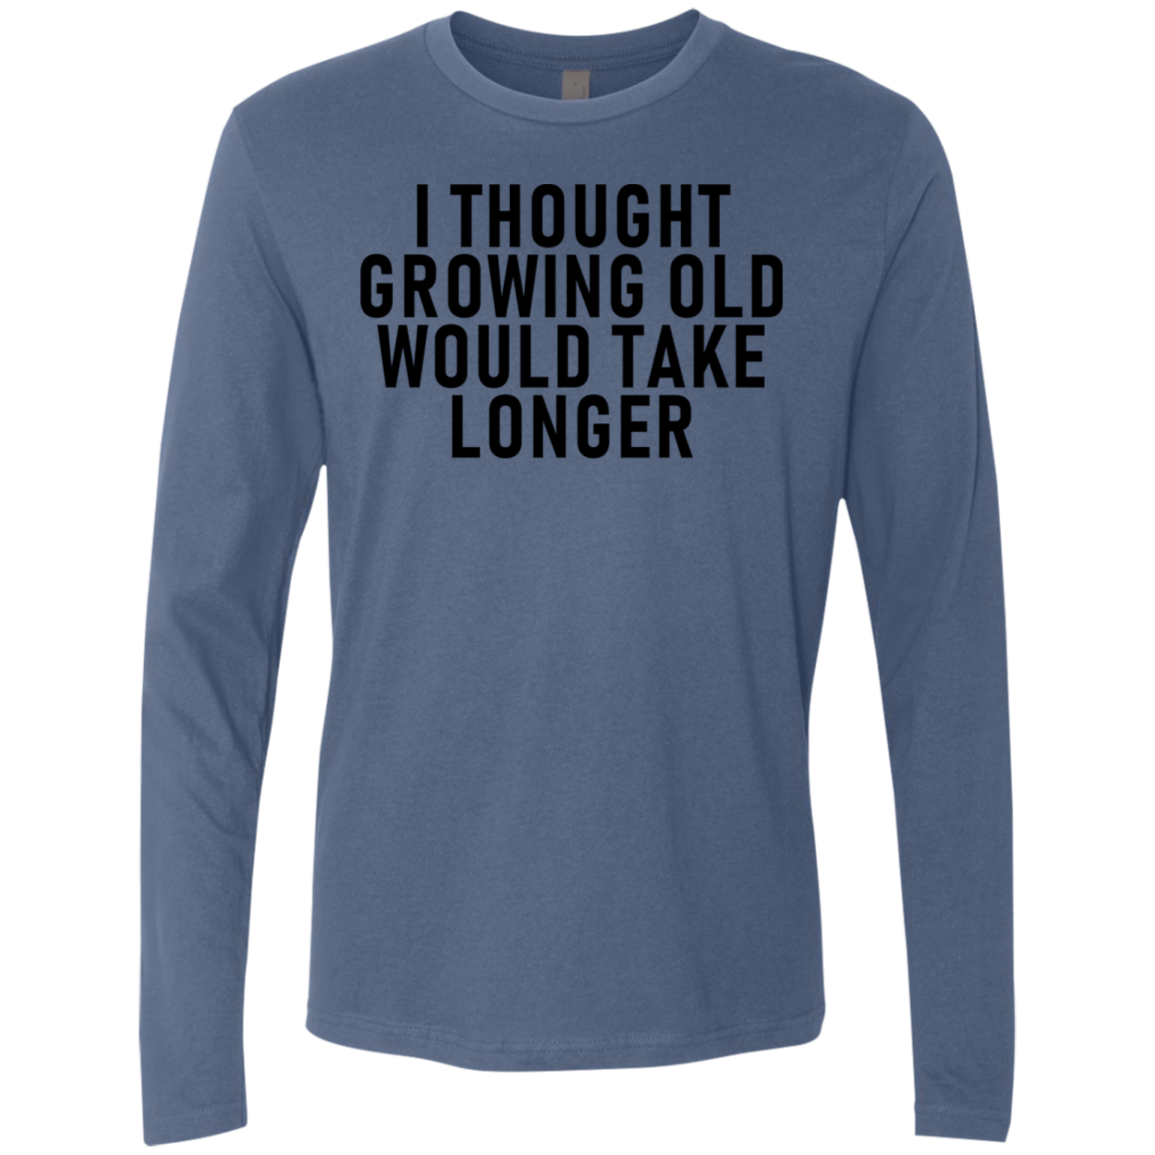 I THought Growing Old Would Take Longer Men's Long Sleeve Tee